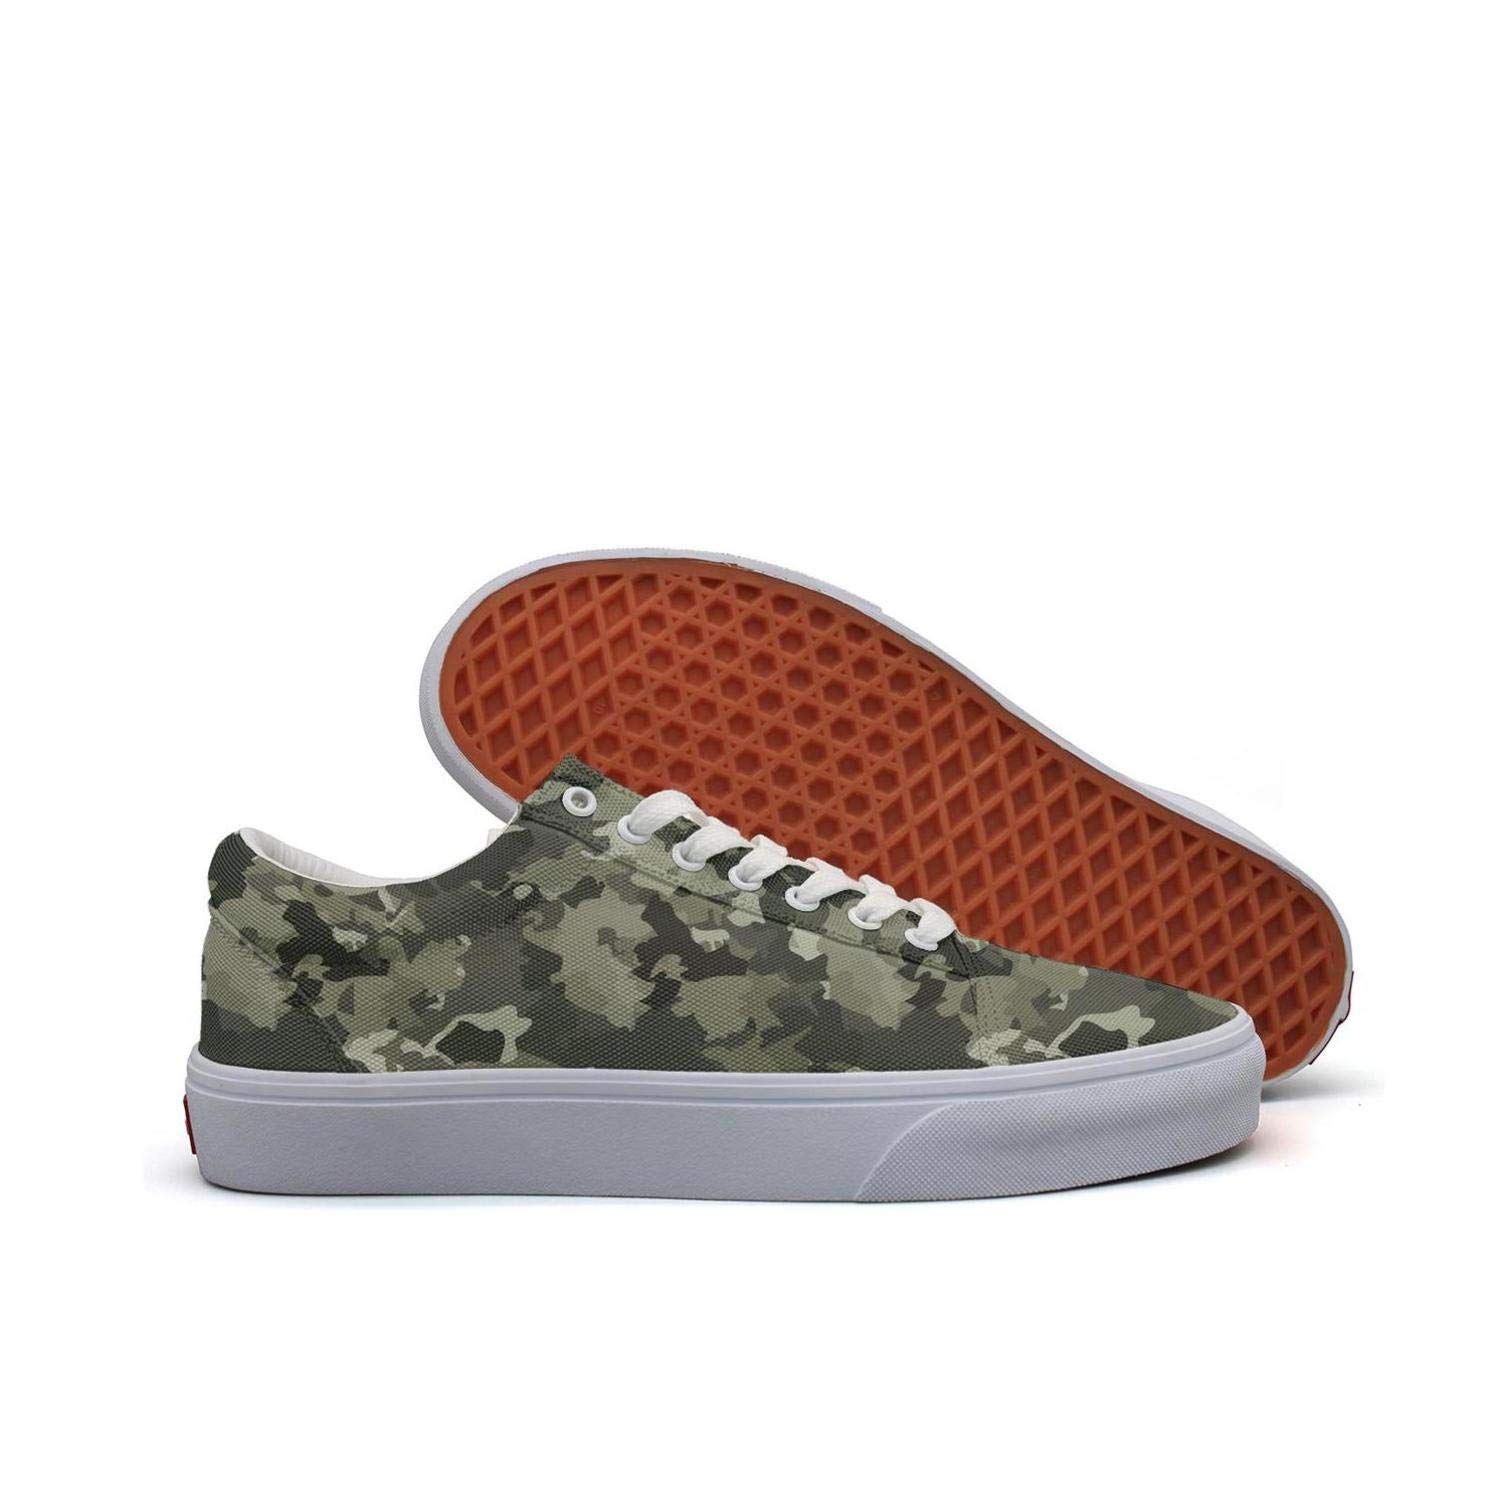 SERXO USA Army Desert camo Skateboard Running Shoes Women Walking Sneakers Wide Width